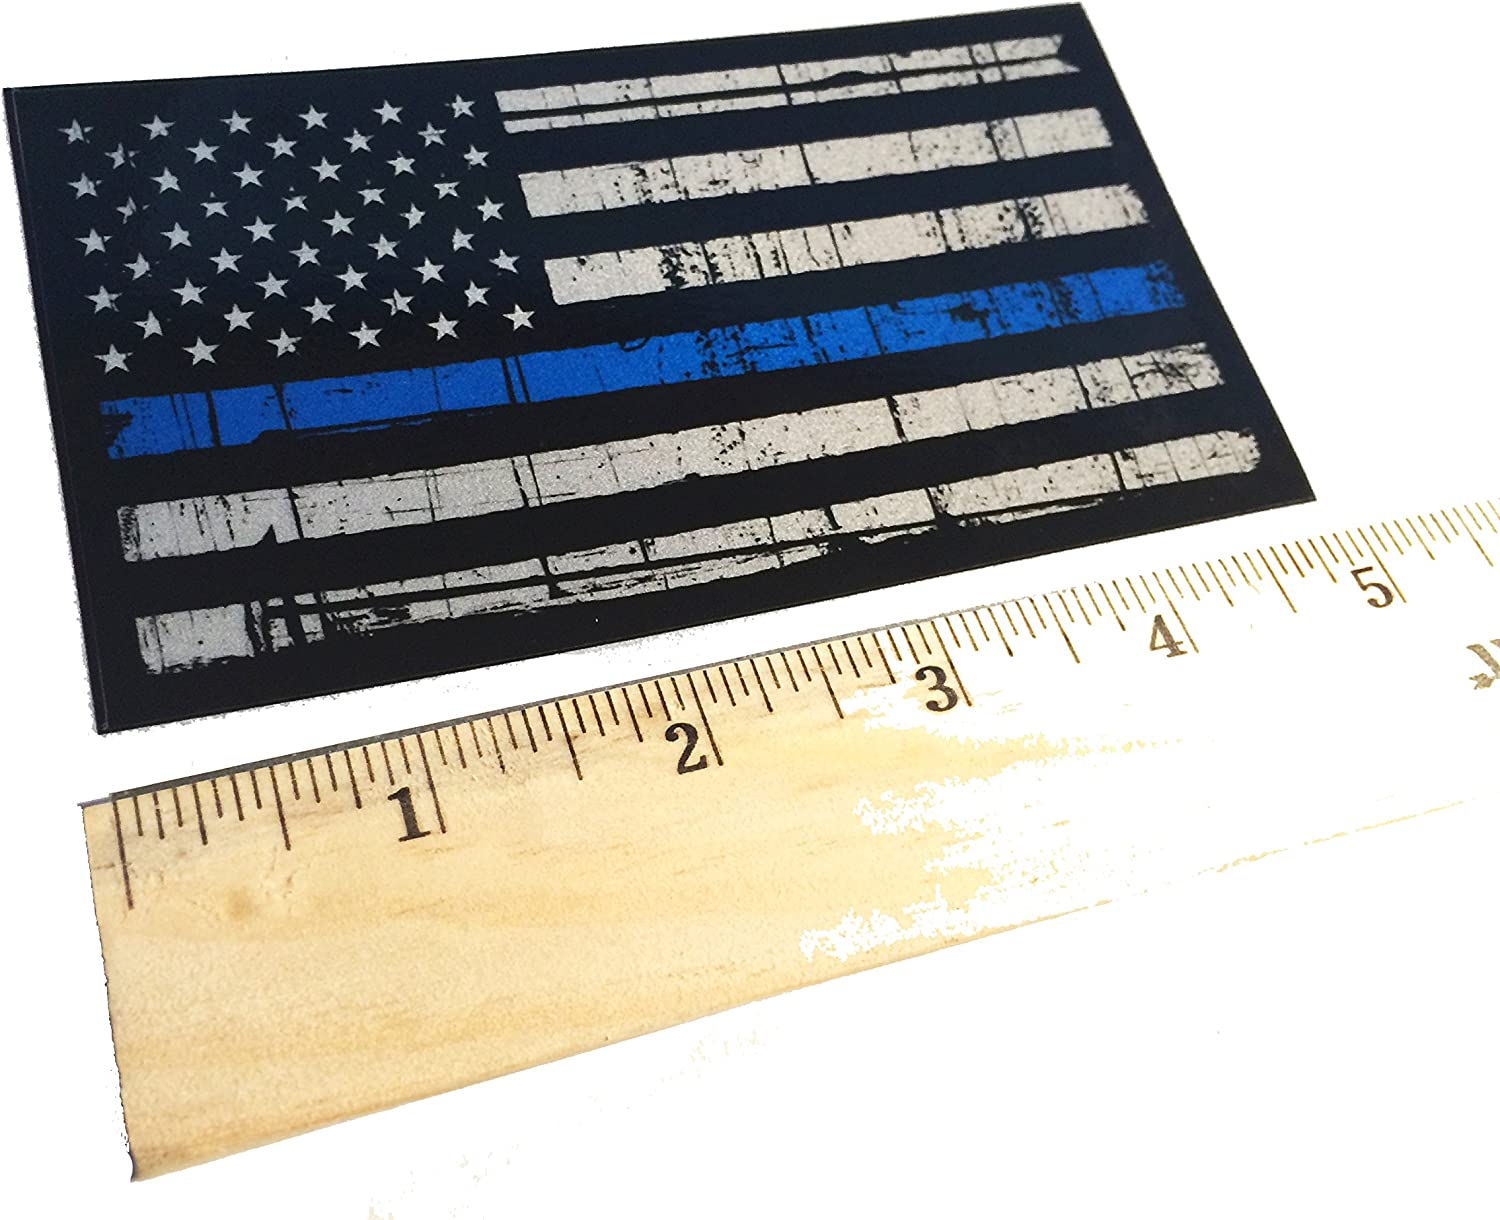 LARGE 5x3 inch reflective Tattered 3M Thin Blue Line Decal Sticker United States Us Flag Tactical Police Law Enforcement